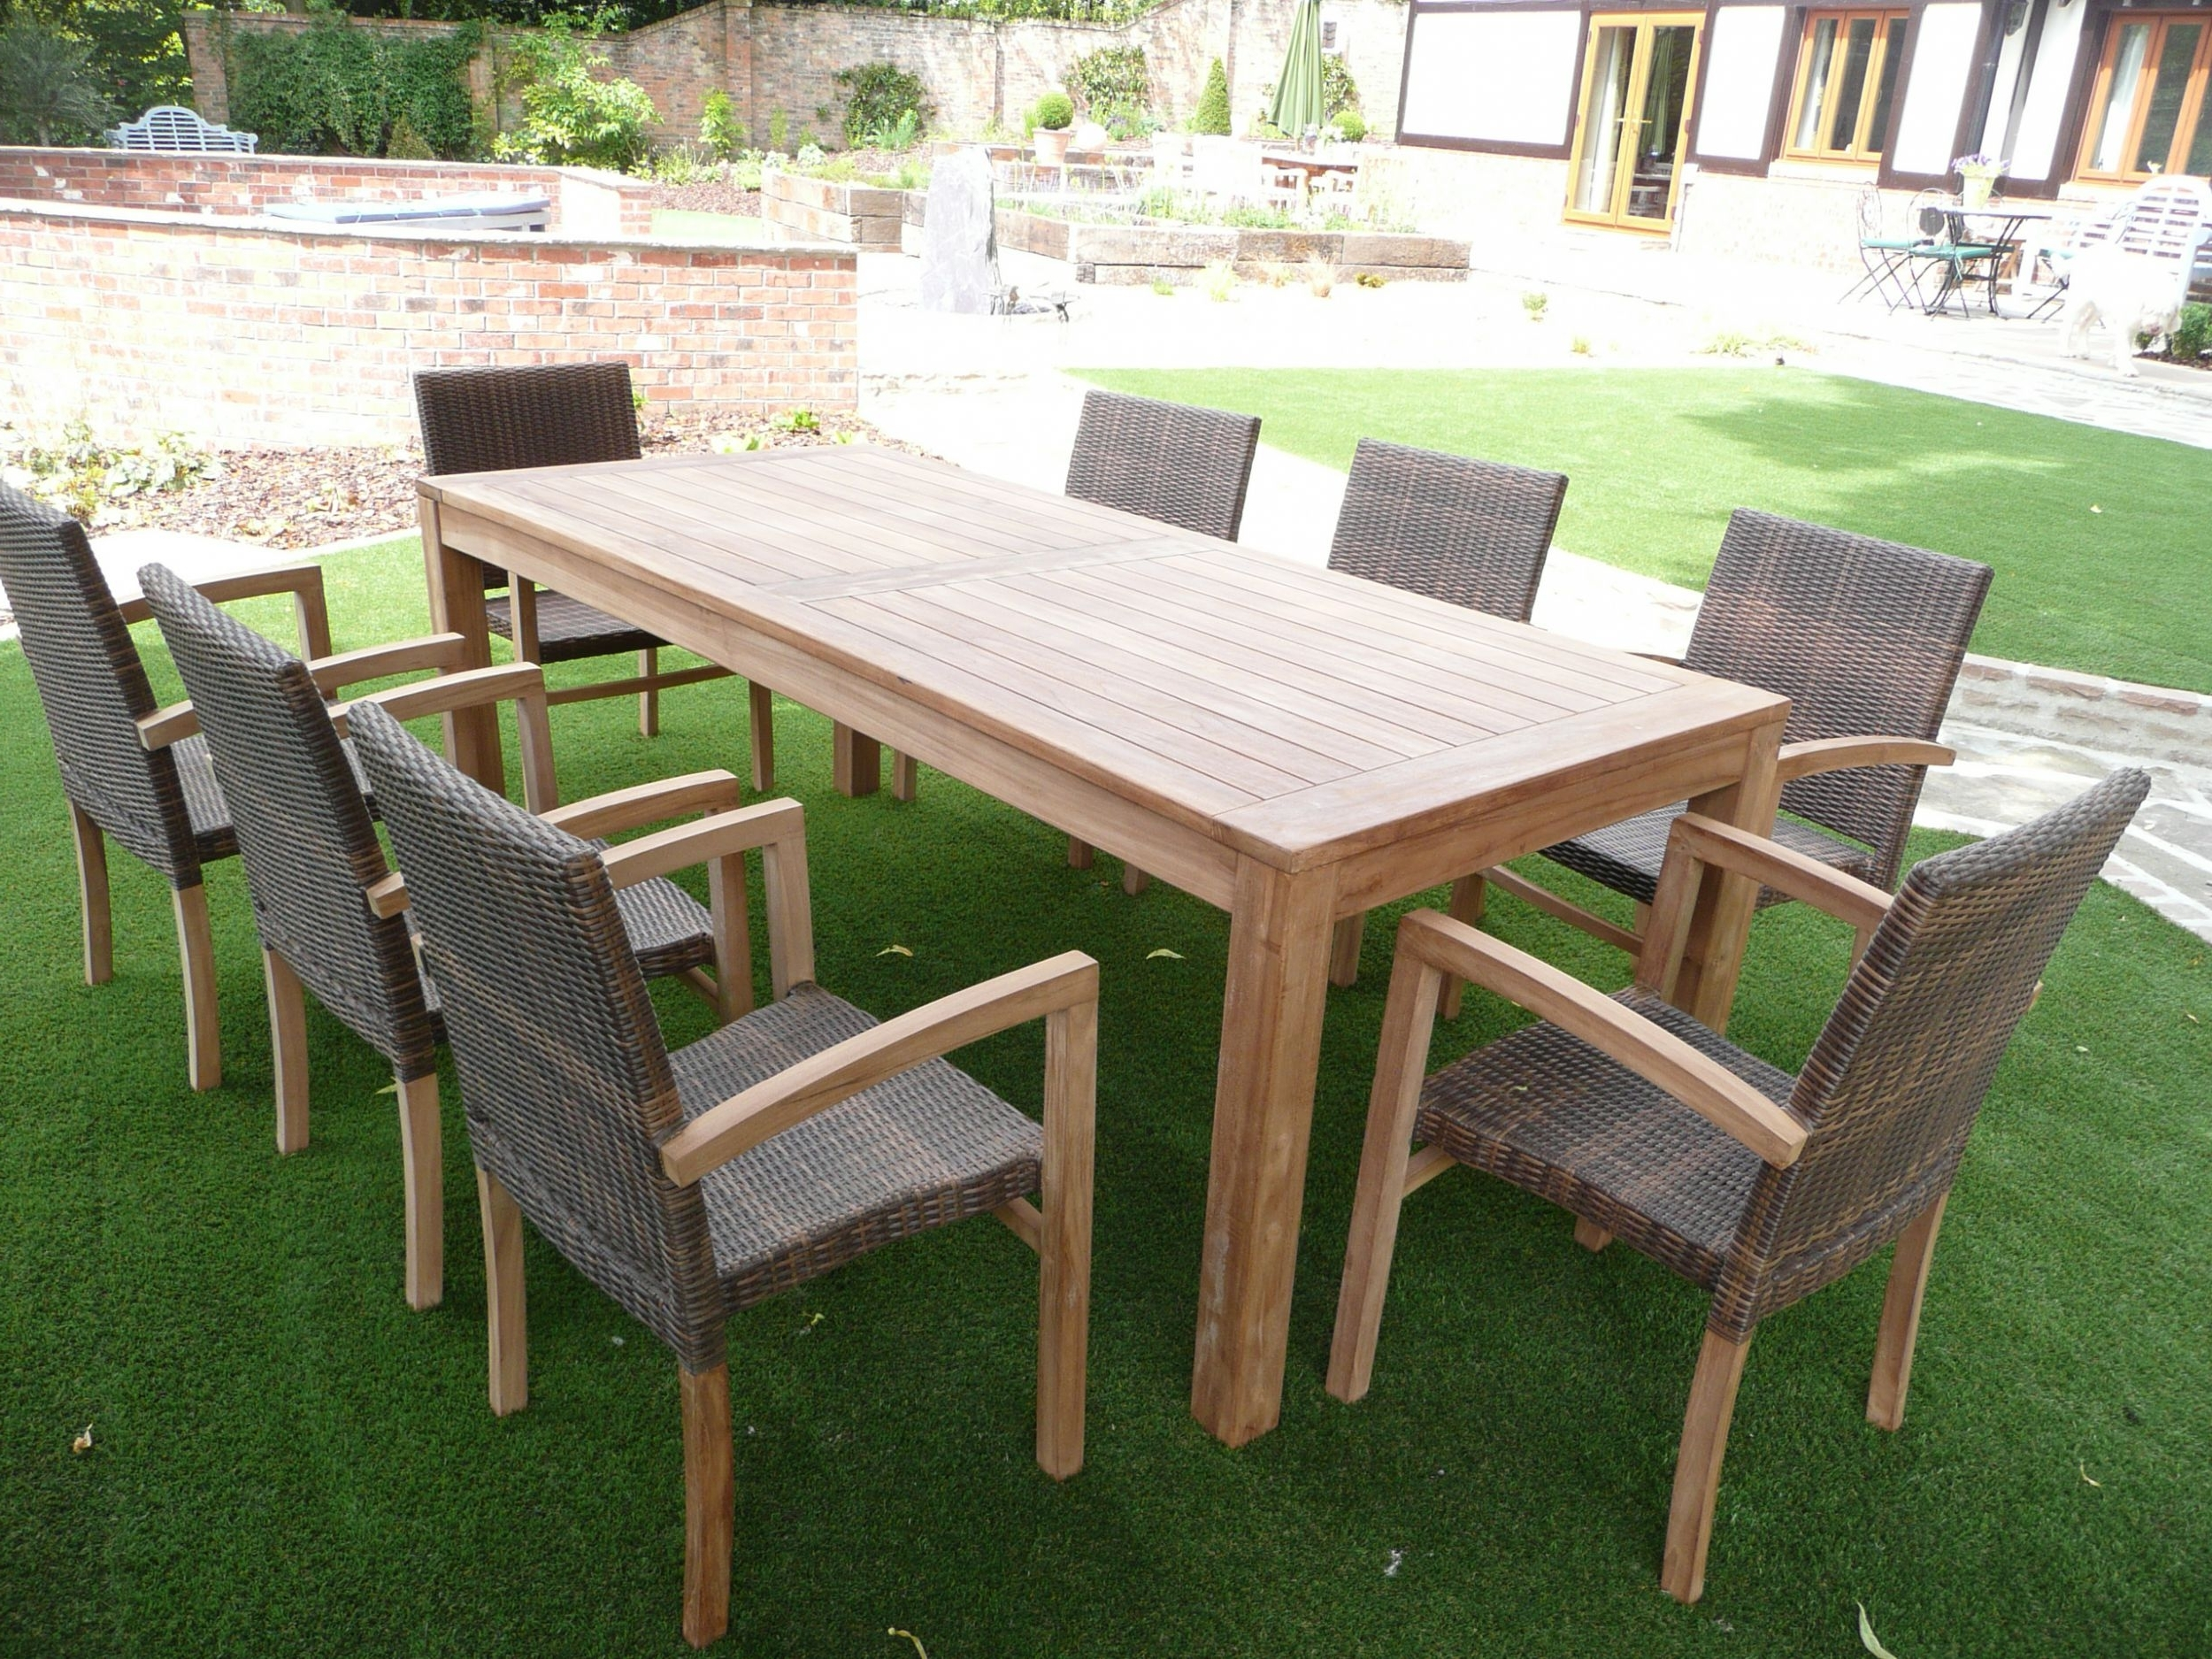 Most Recent Outdoor Dining Table And Chairs Sets Regarding Amazing Open Garden With Green Grasses And Wicker Dining Sets Feat (View 21 of 25)